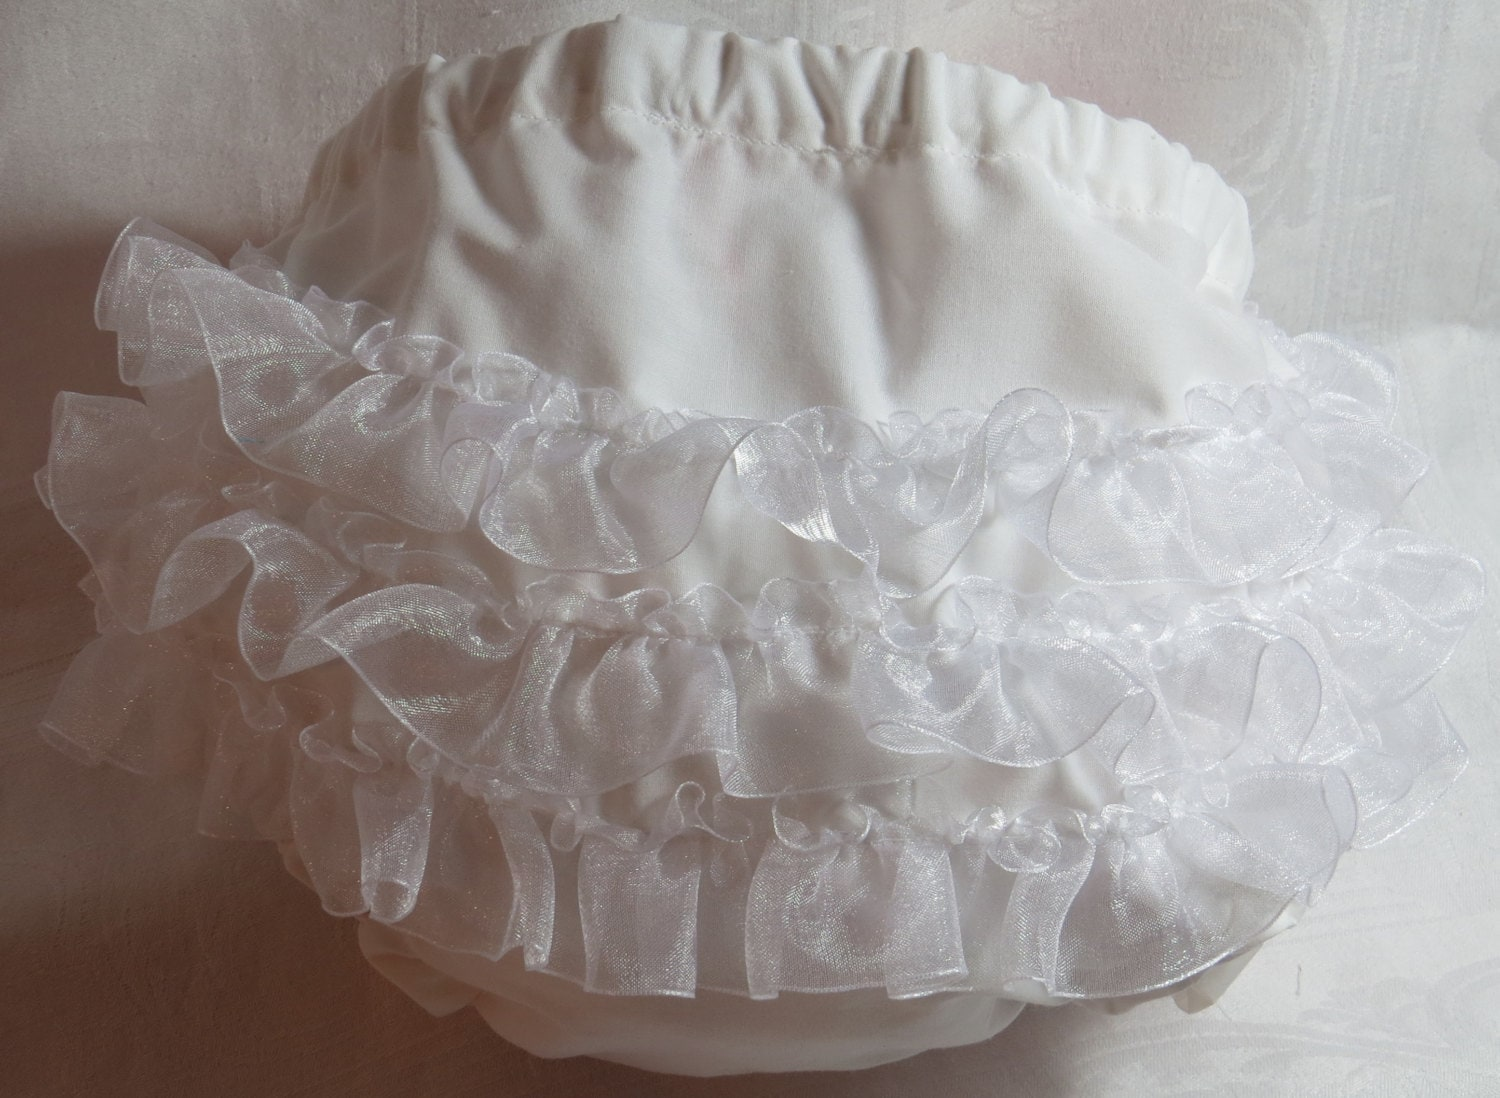 White frilly apron nz - Fancy Pants Frilly Panties Baby Panty Diaper Covers Ruffle Diaper Covers Baby Bloomers Girl S Panties Girl S Bloomers Infant Panty Babypanty